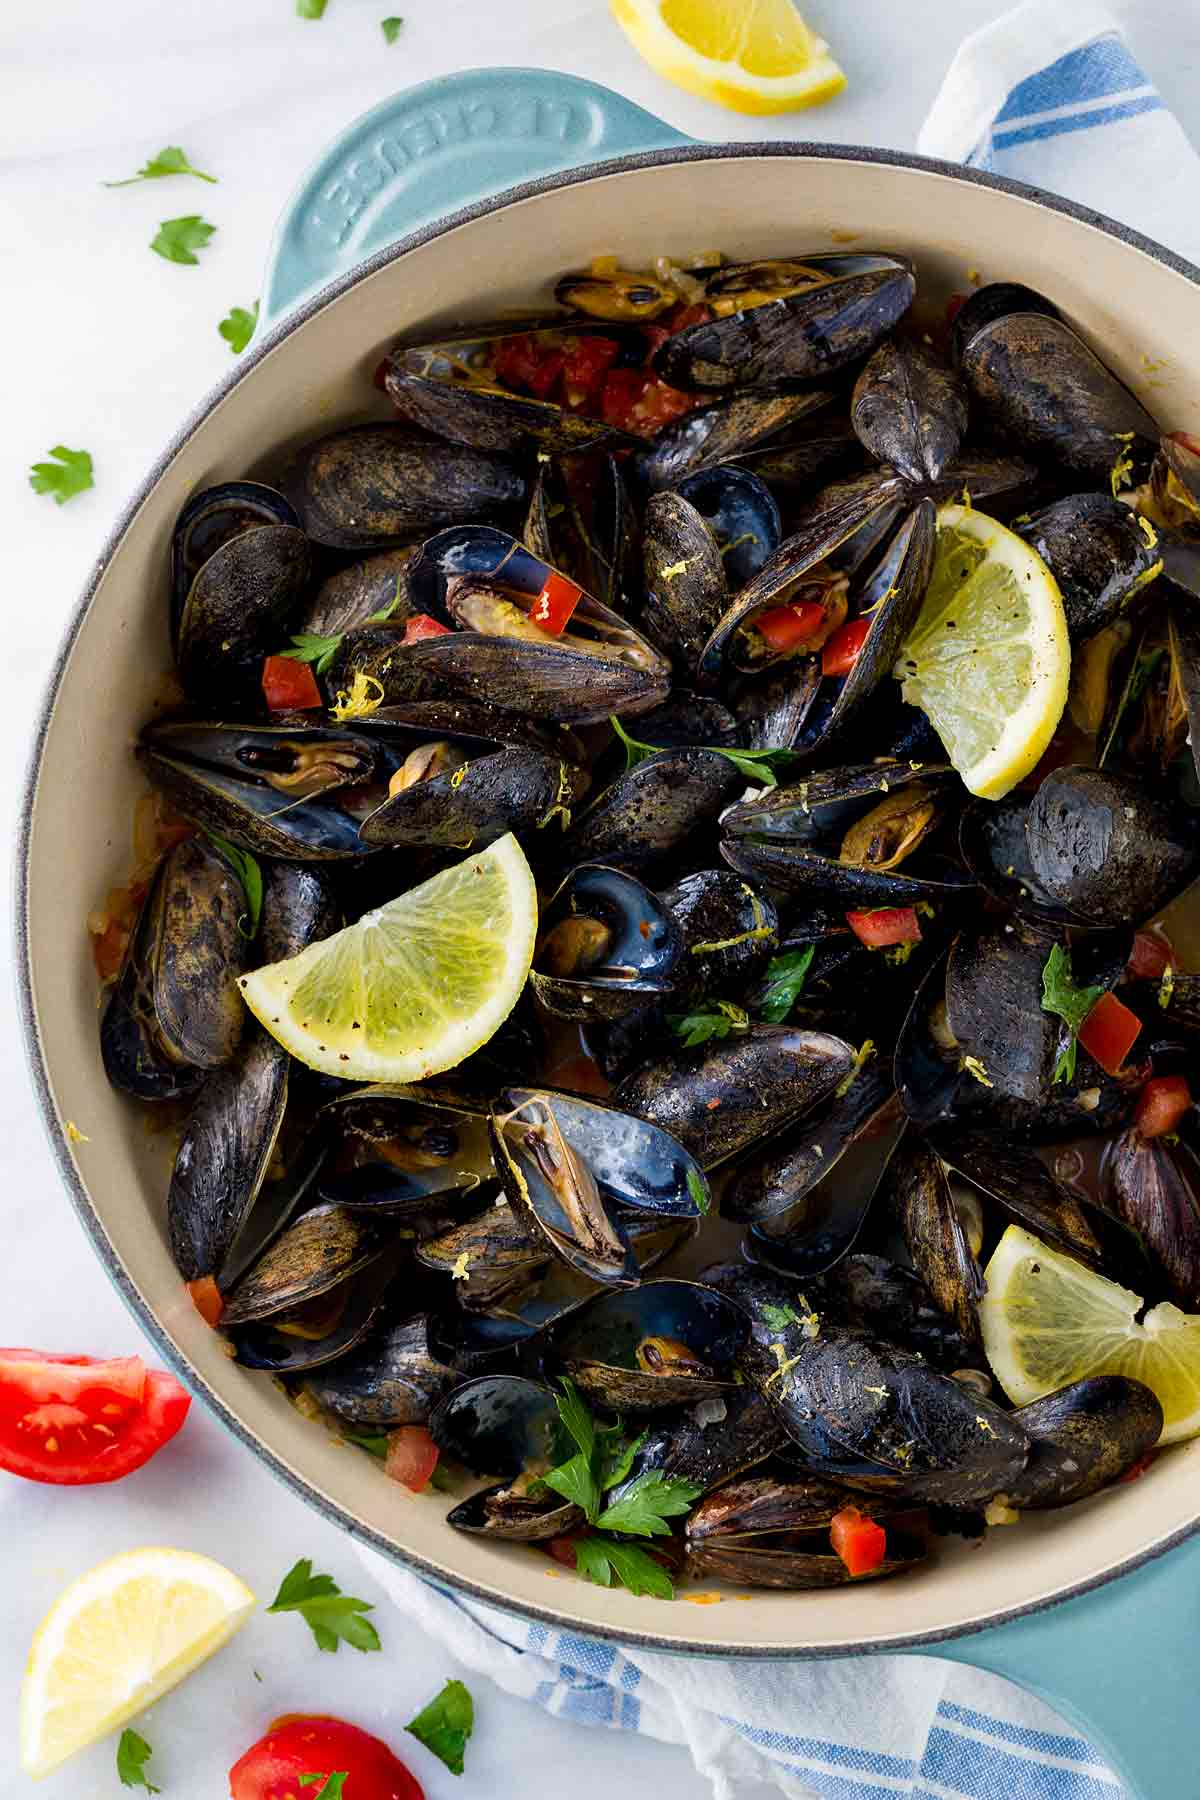 Steamed mussels with white wine and garlic is an easy one-pot meal ready in 20 minutes! Aromatic vegetables are cooked with fresh mussels for a light appetizer or meal.